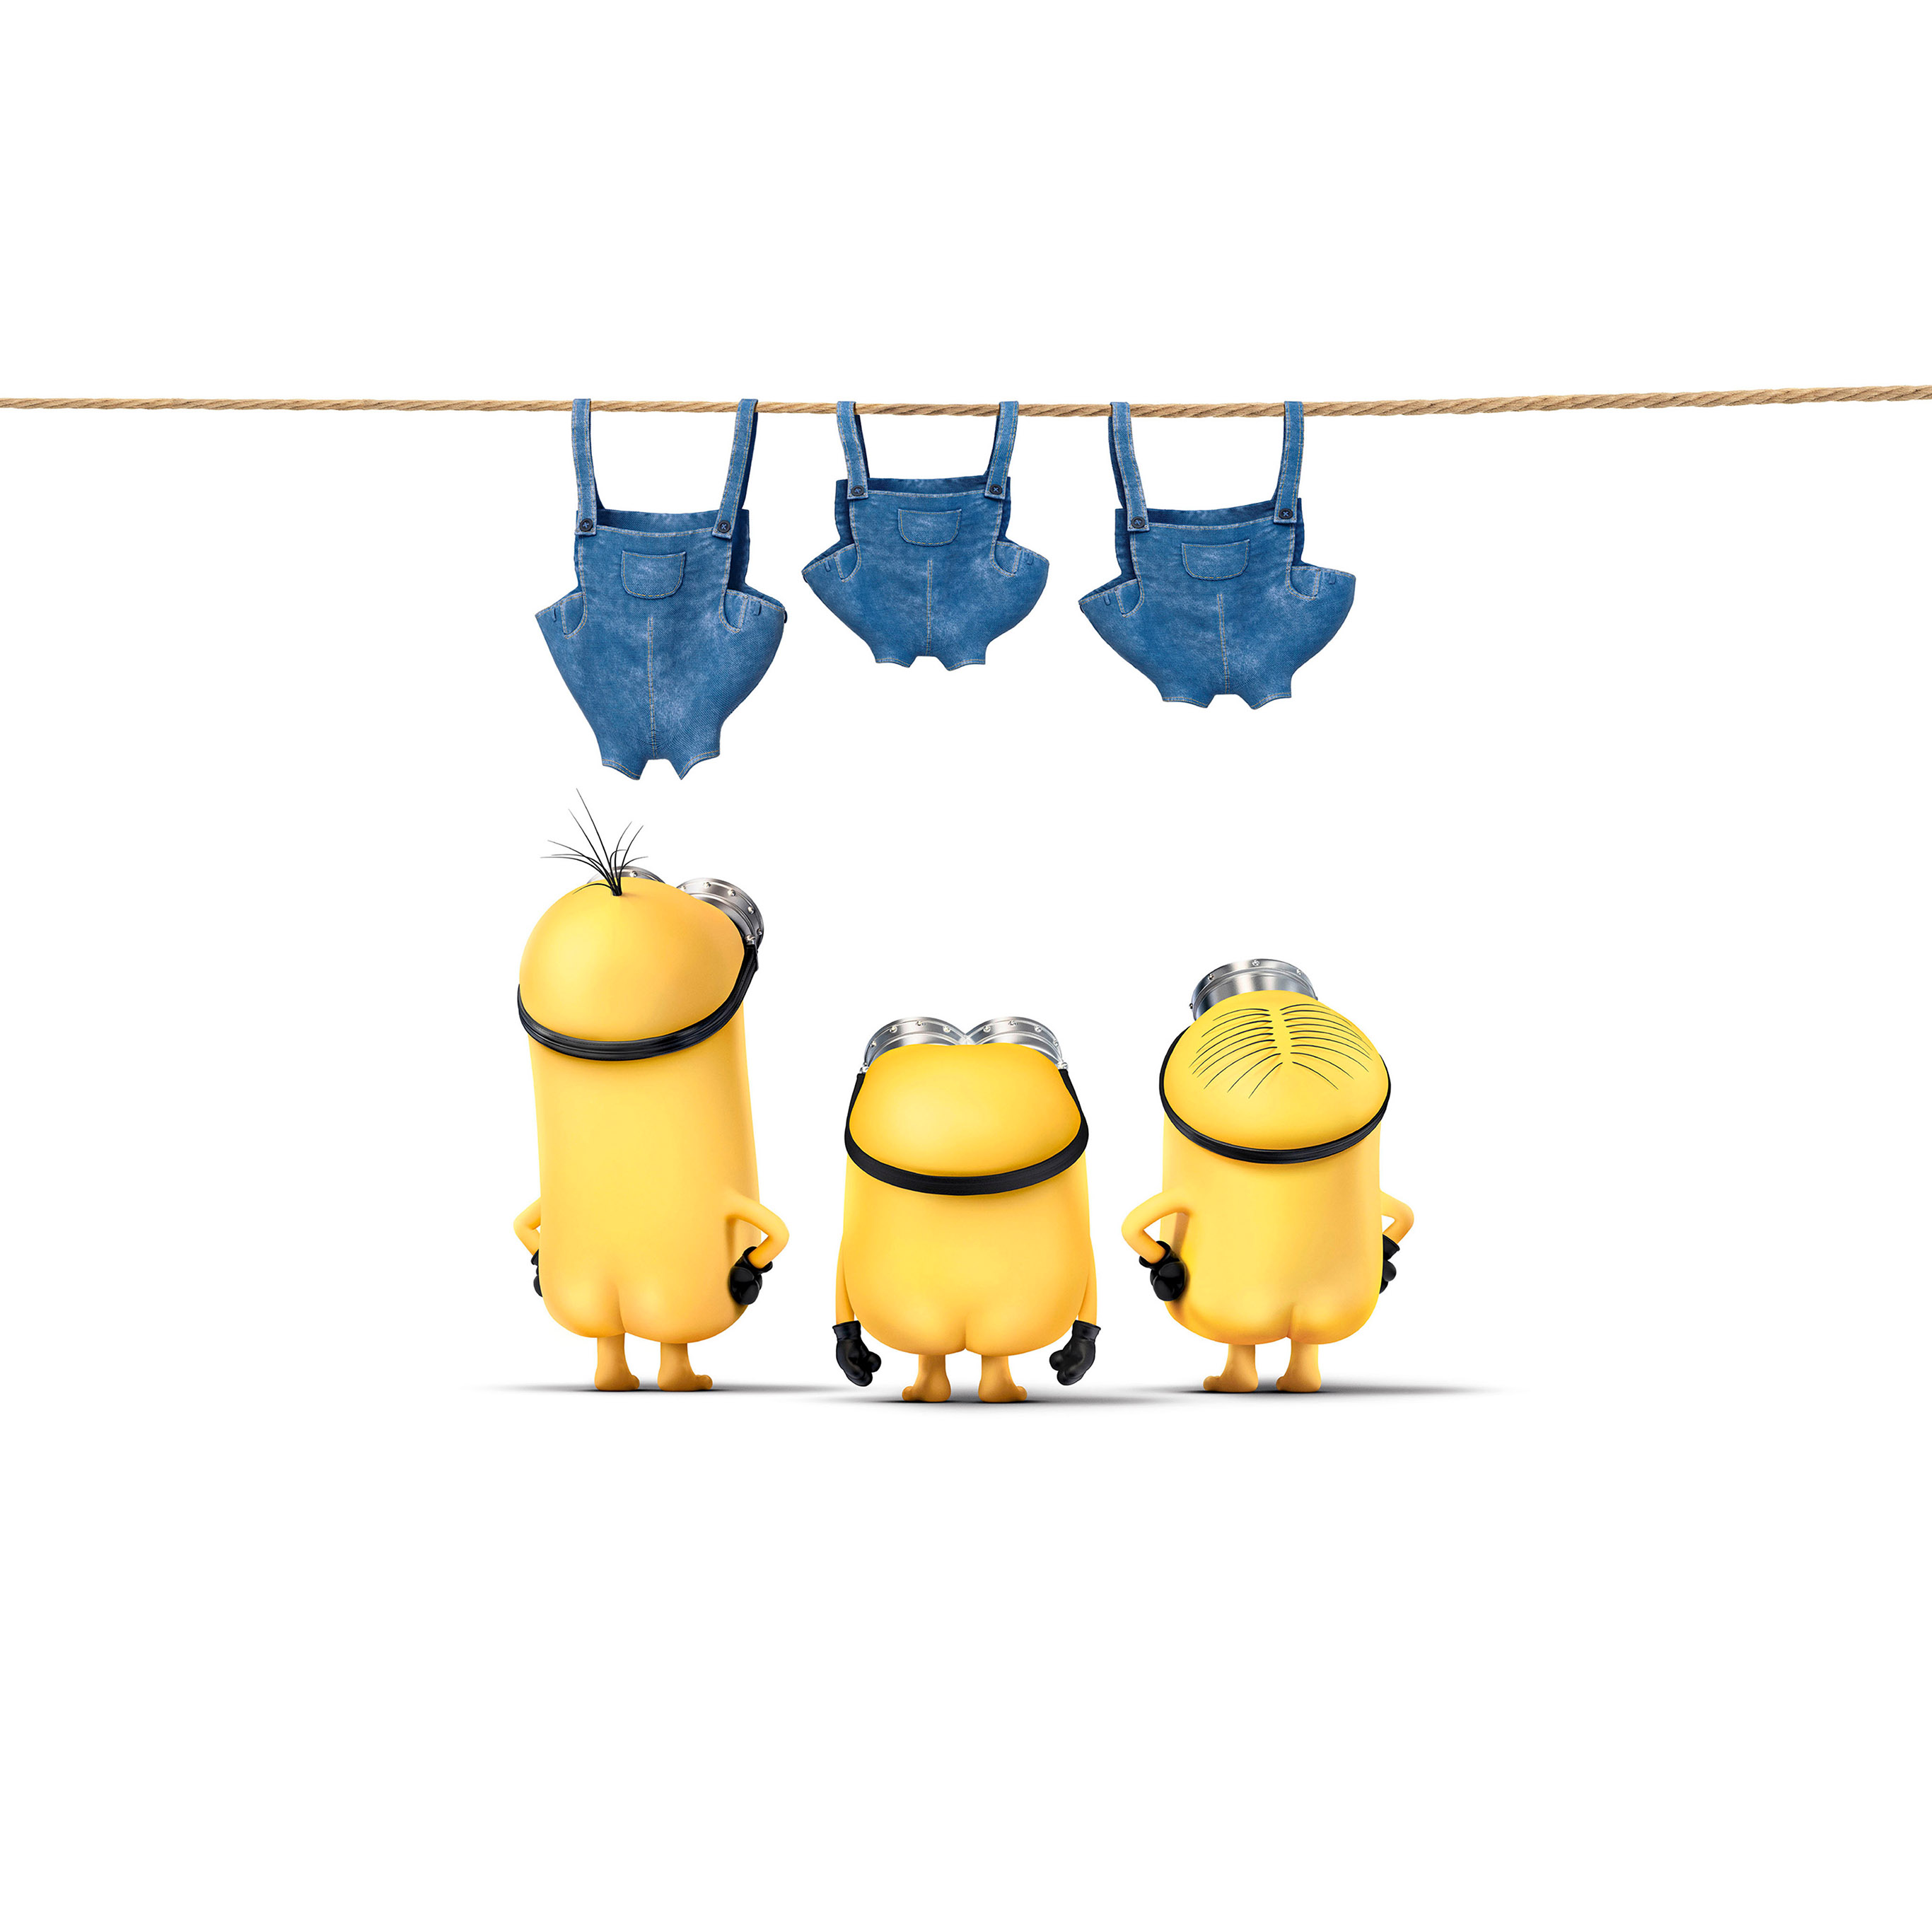 Minions Iphone X Wallpaper Ar89 Minions Despicable Nude Me Cute Yellow Art